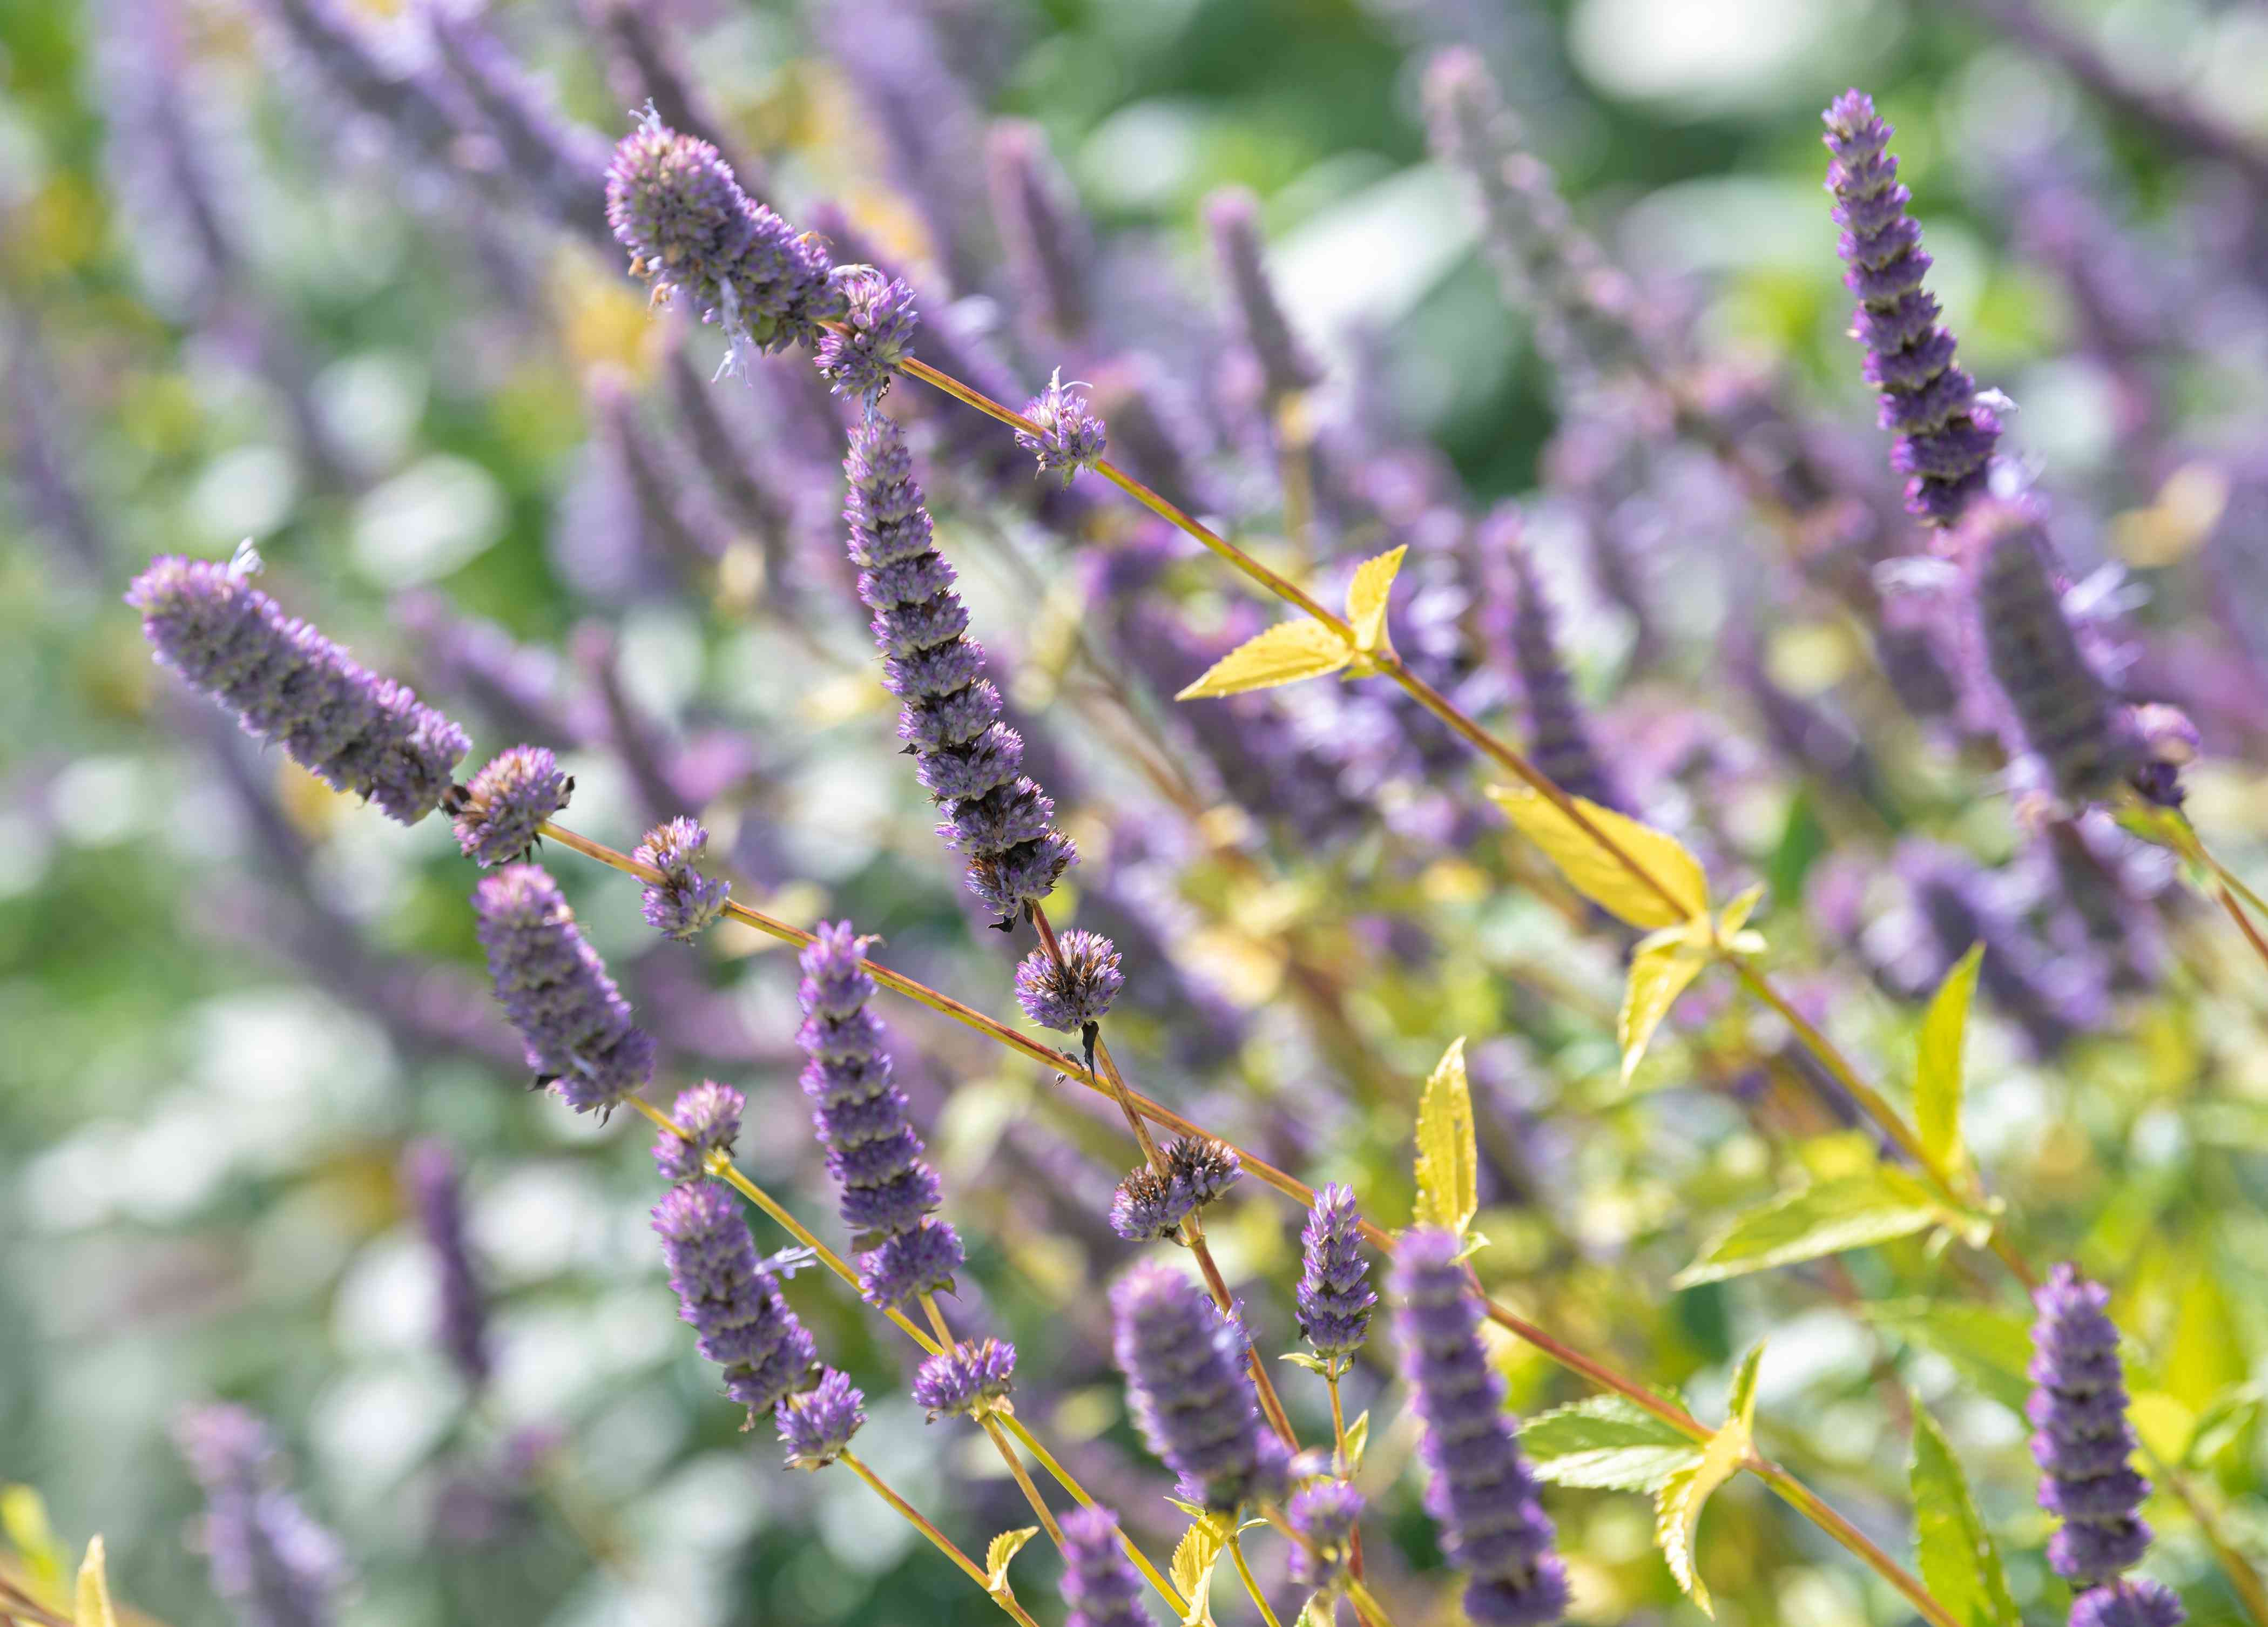 Anise hyssop plant with purple flowers clumped on thin spikes above yellow-green leaves